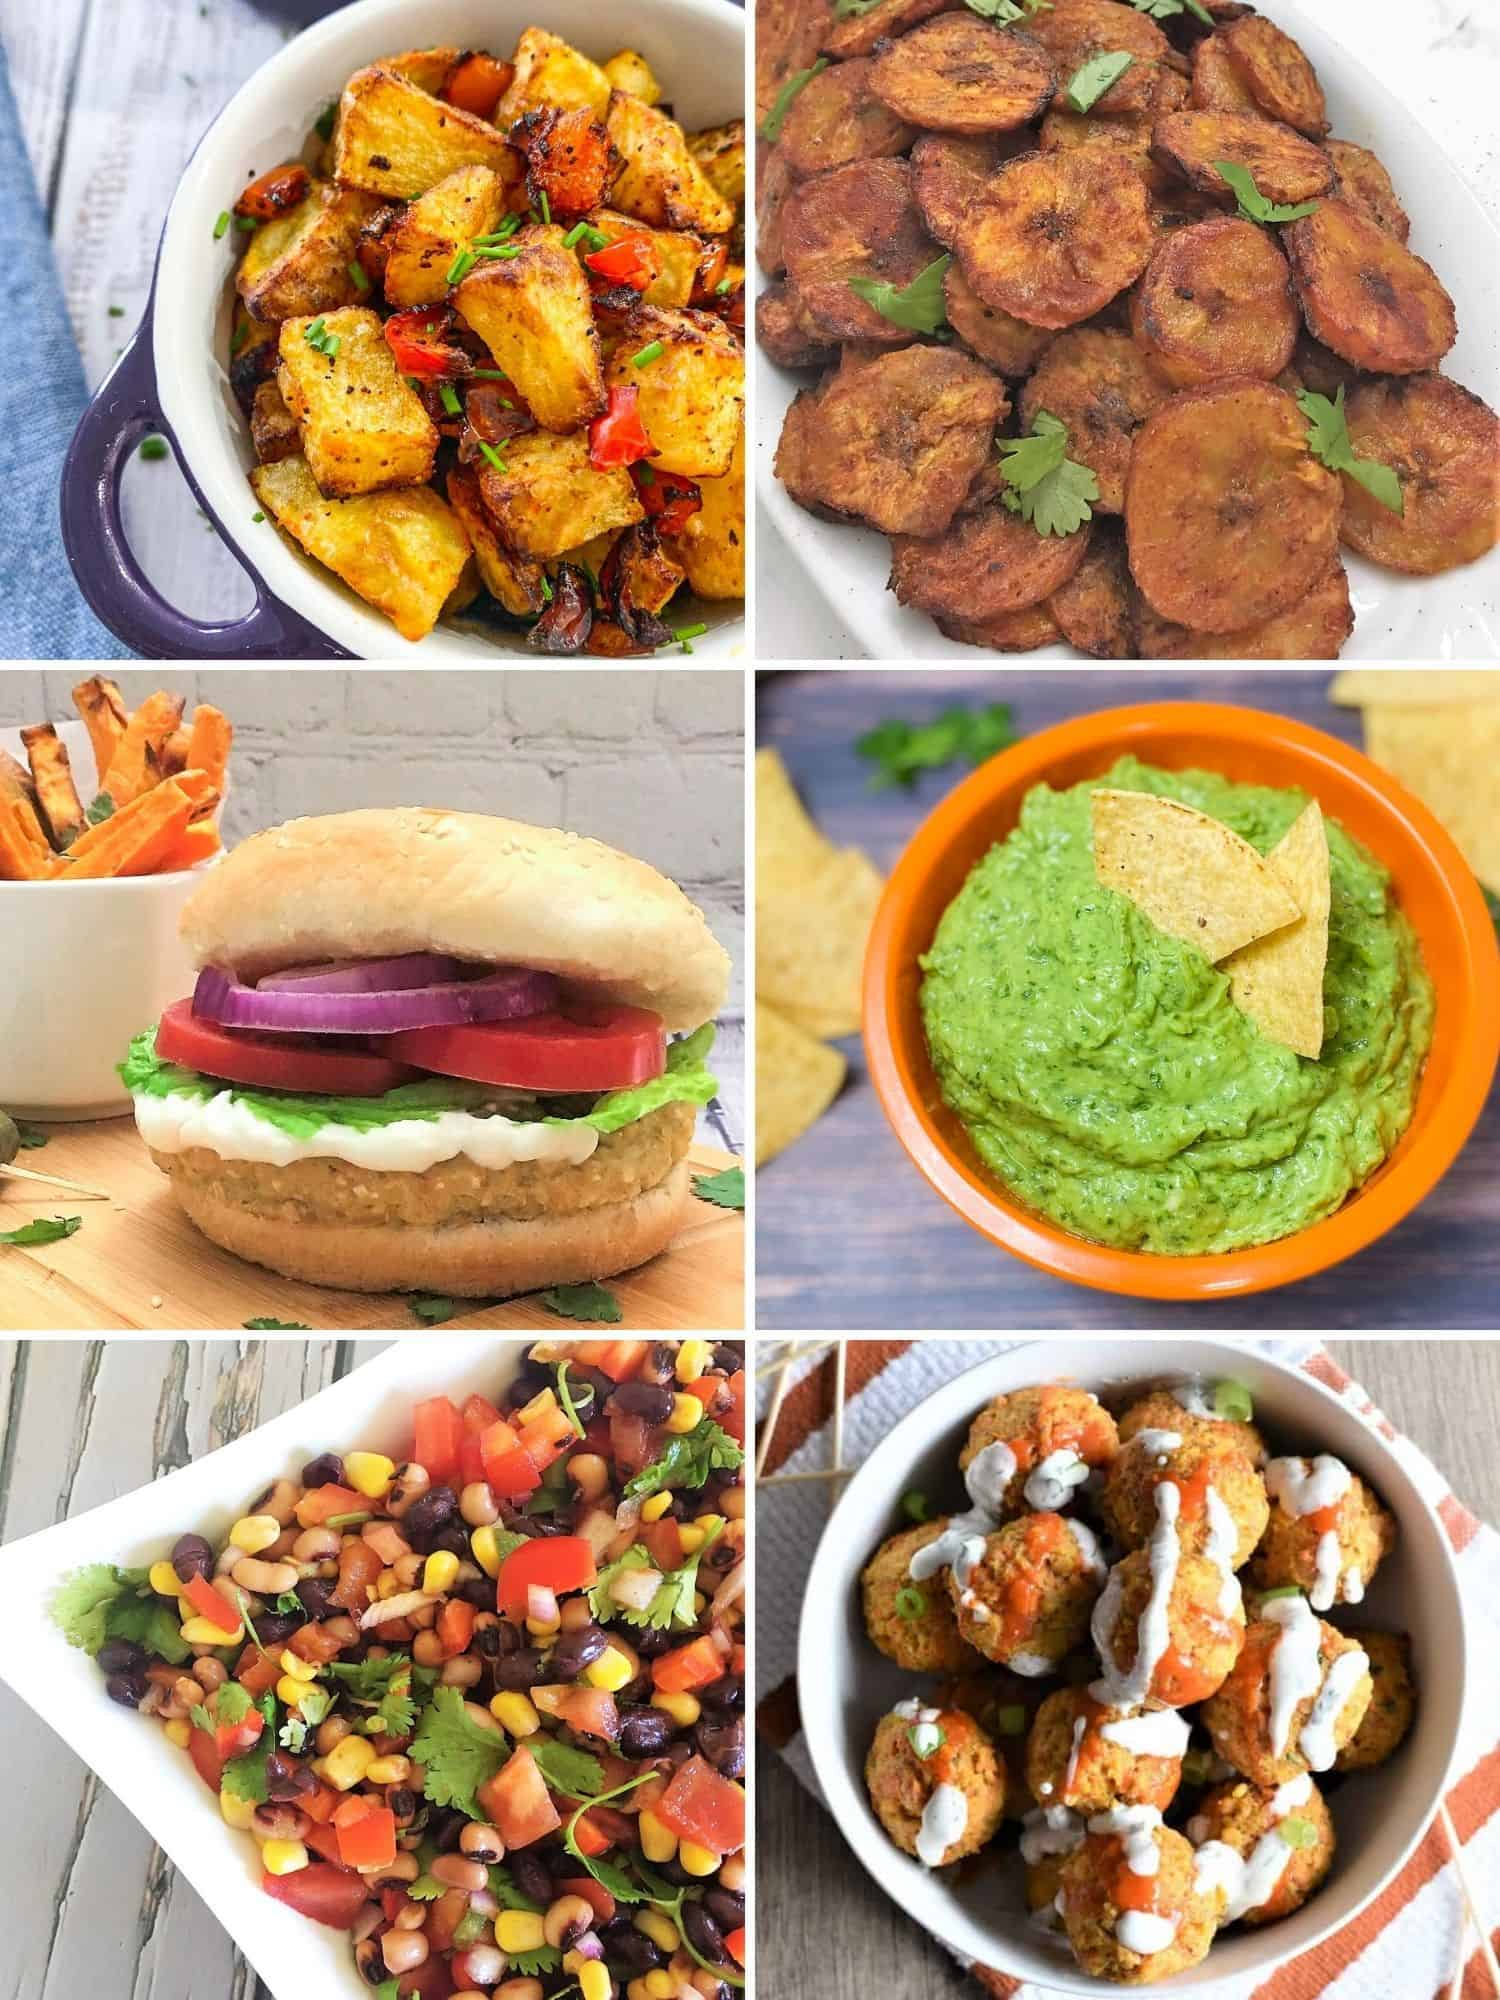 Collage of vegan superbowl food: potatoes, chips, burger, guac, cowboy caviar, meatballs.